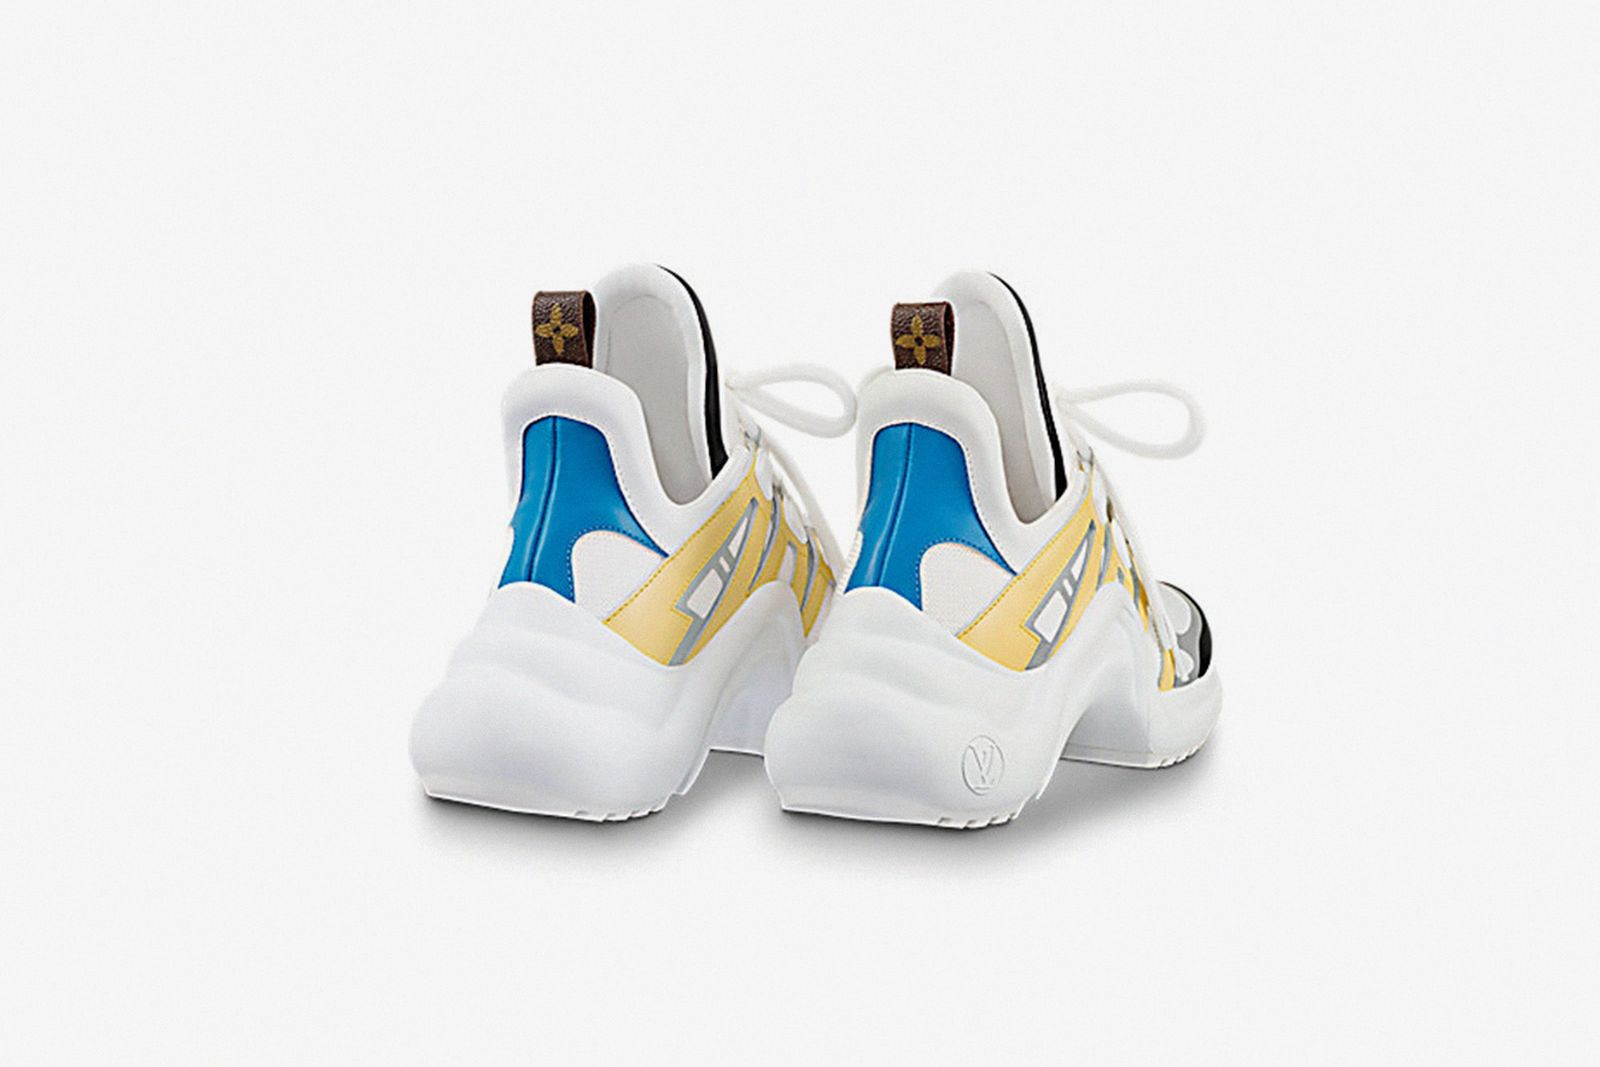 louis-vuitton-archlight-ss18-release-date-price-12